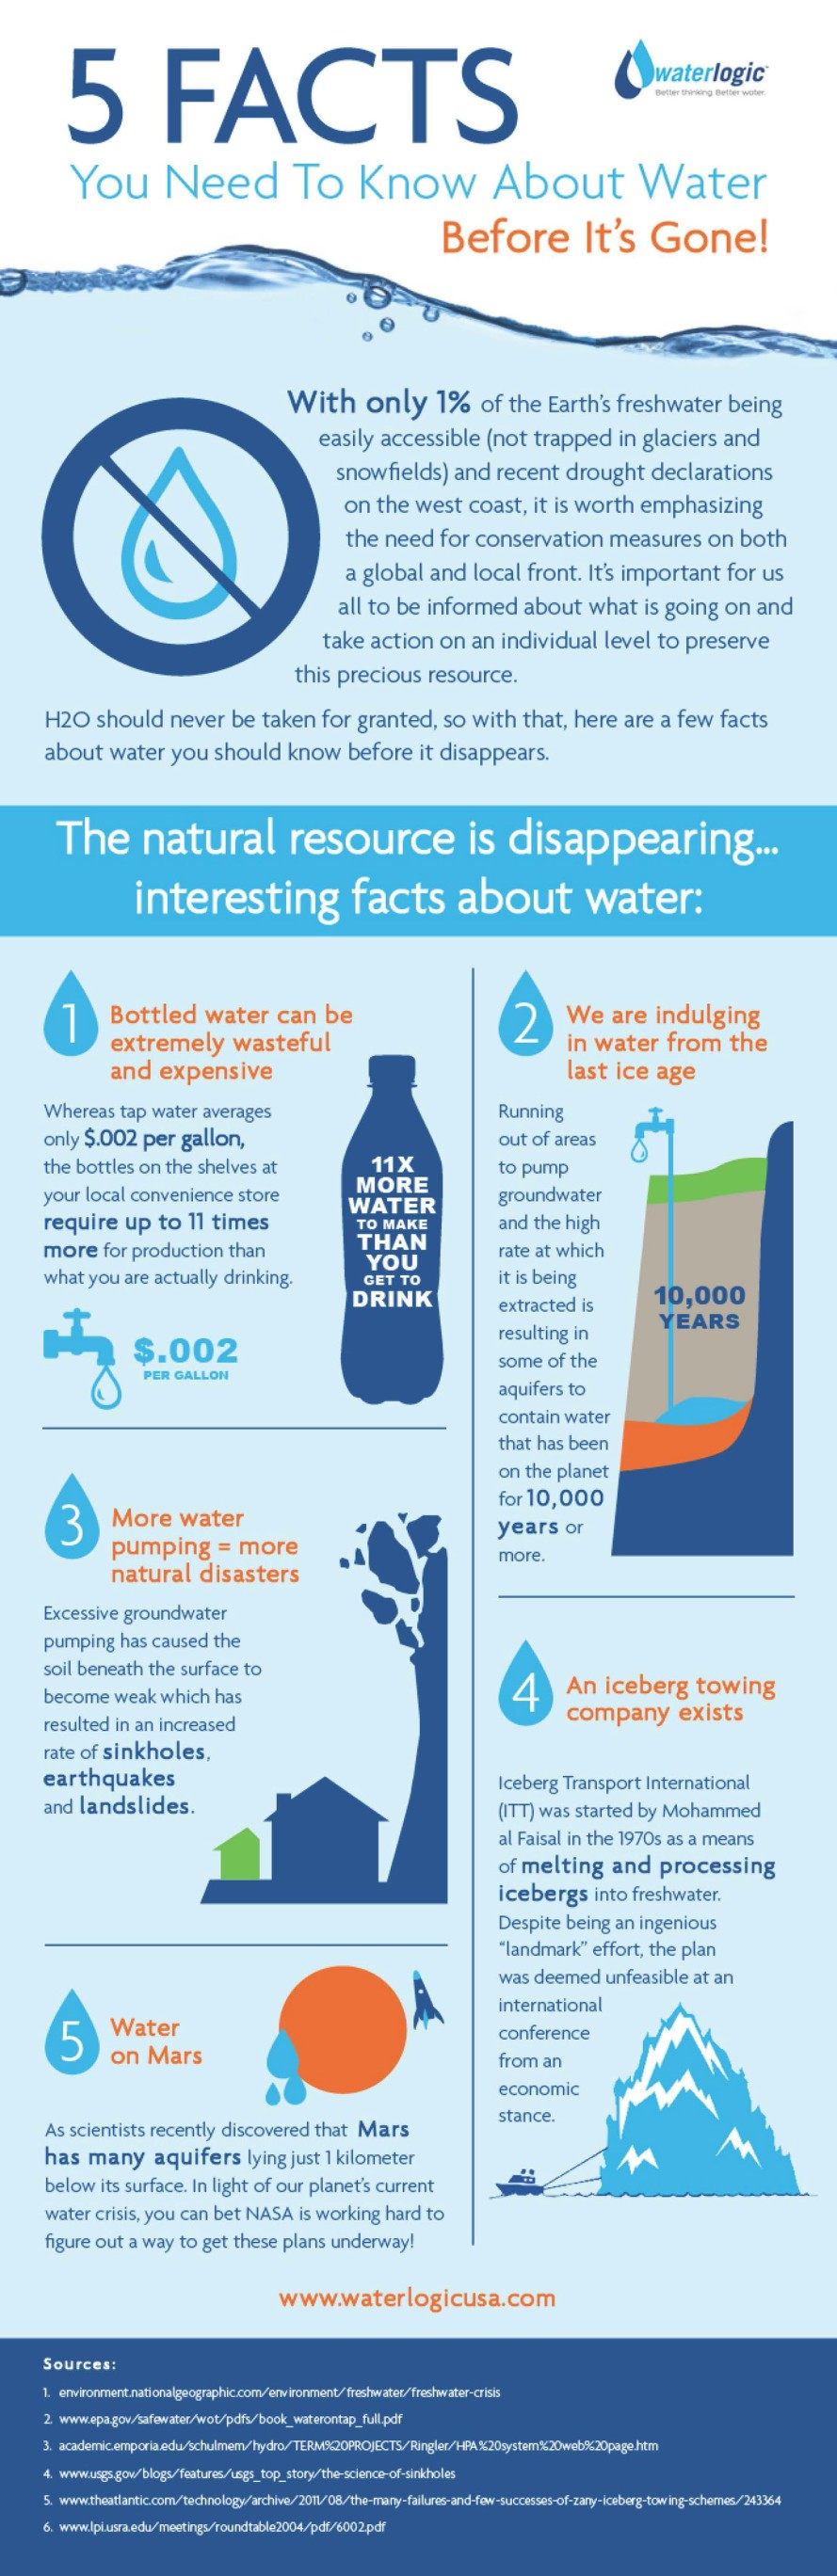 5-facts-about-disappearing-water-889x2737